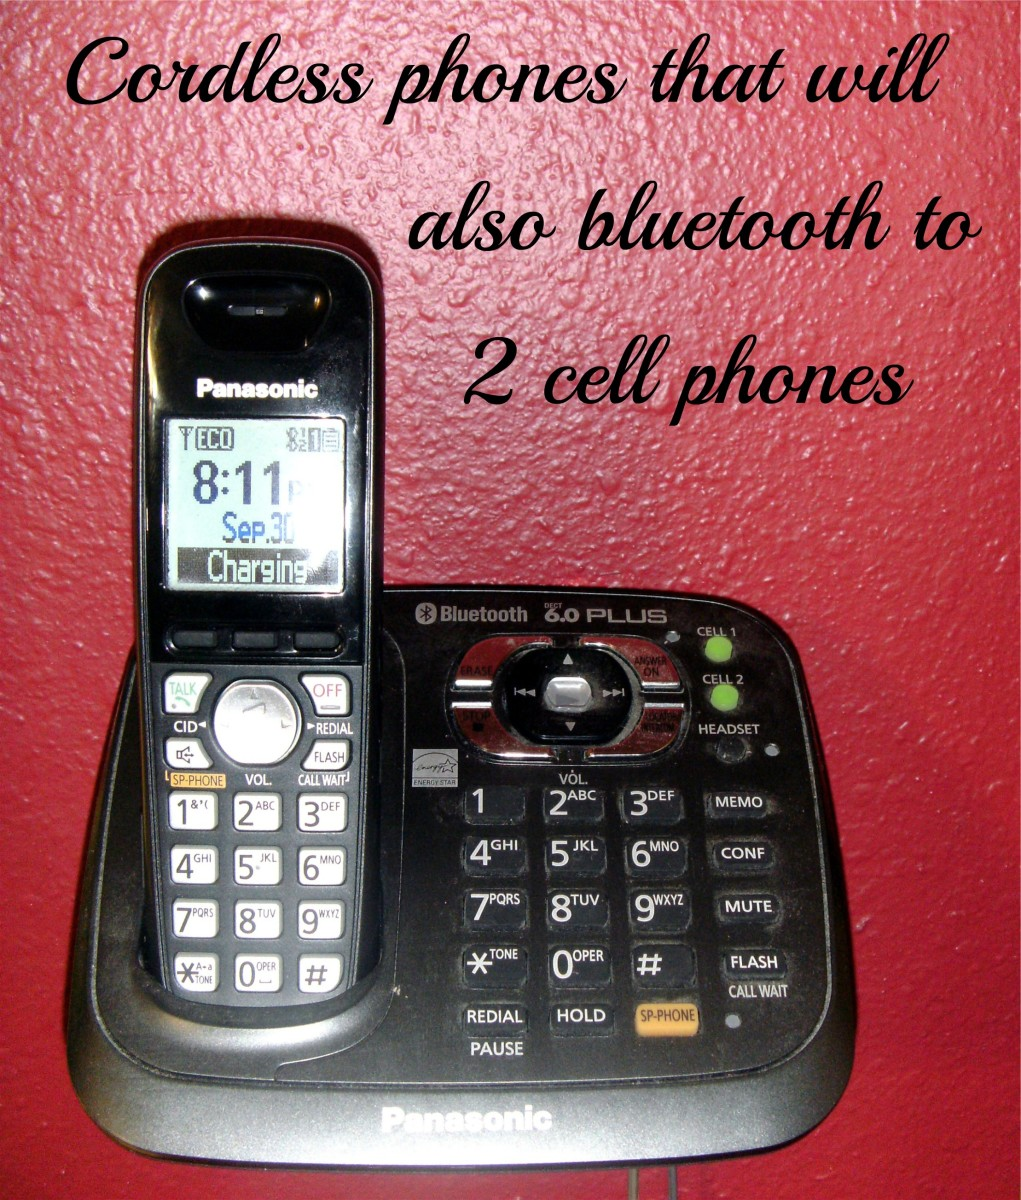 A nifty cordless phone home or small business system that will handle 2 cell phones plus a landline if desired.